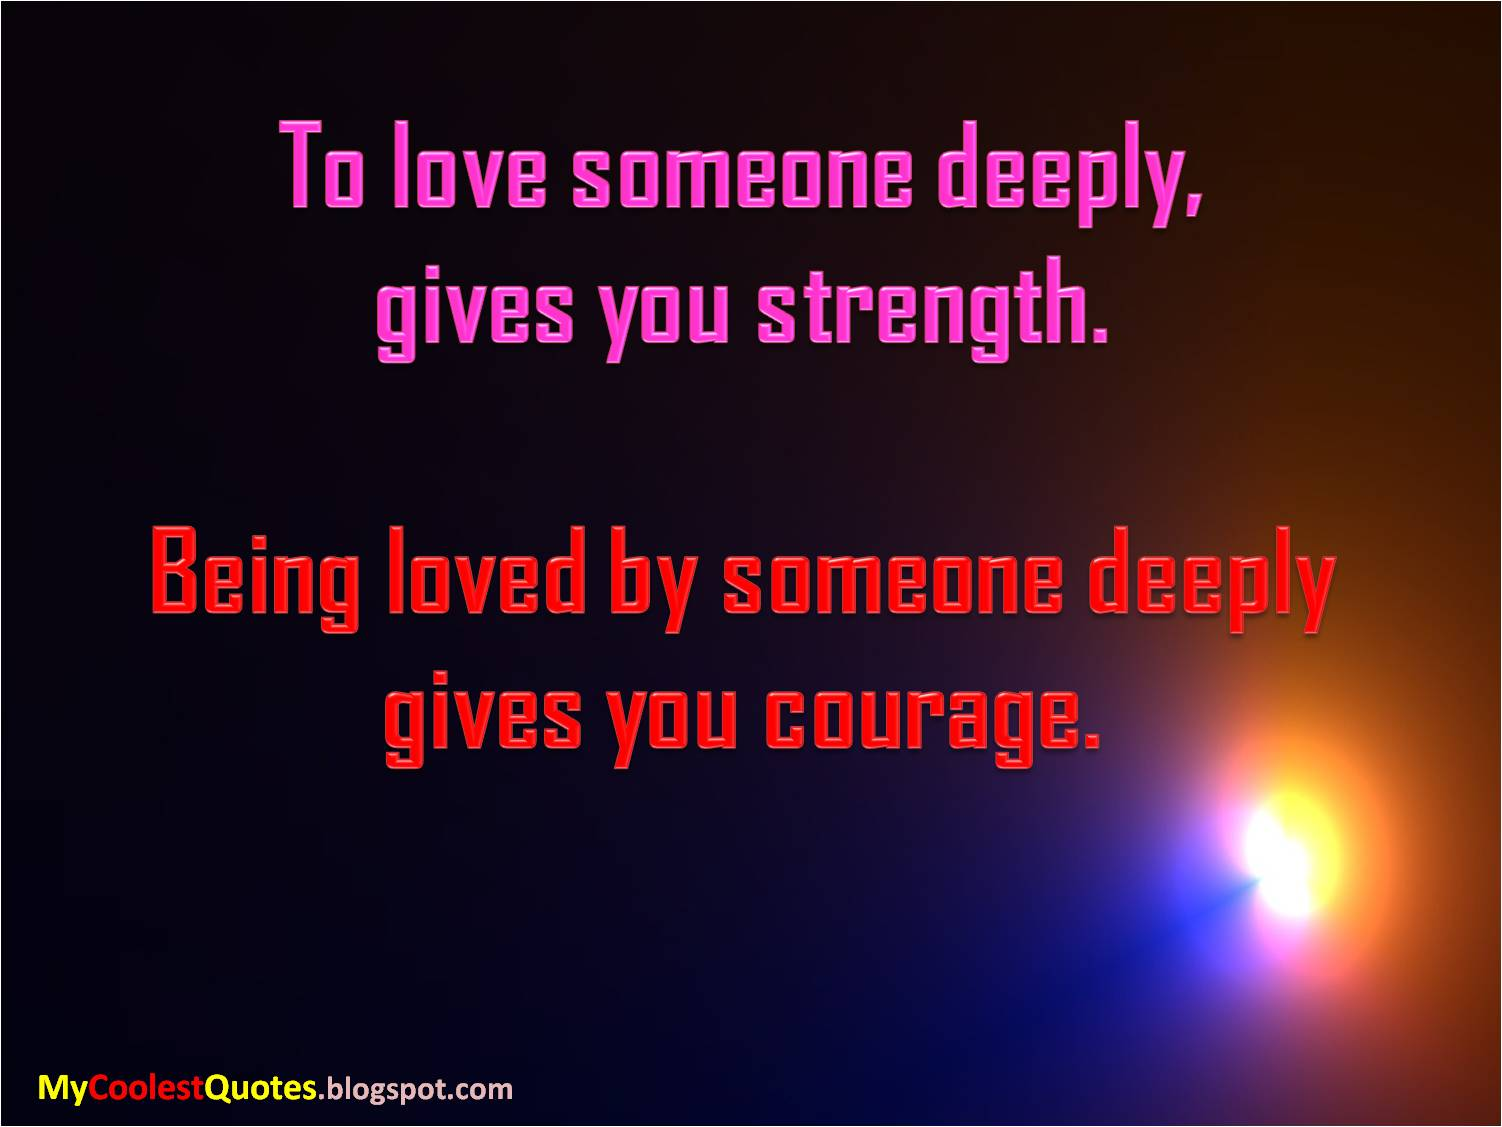 Unconditional Love Quotes For Him To Love Someone Deeply  Best Quotes